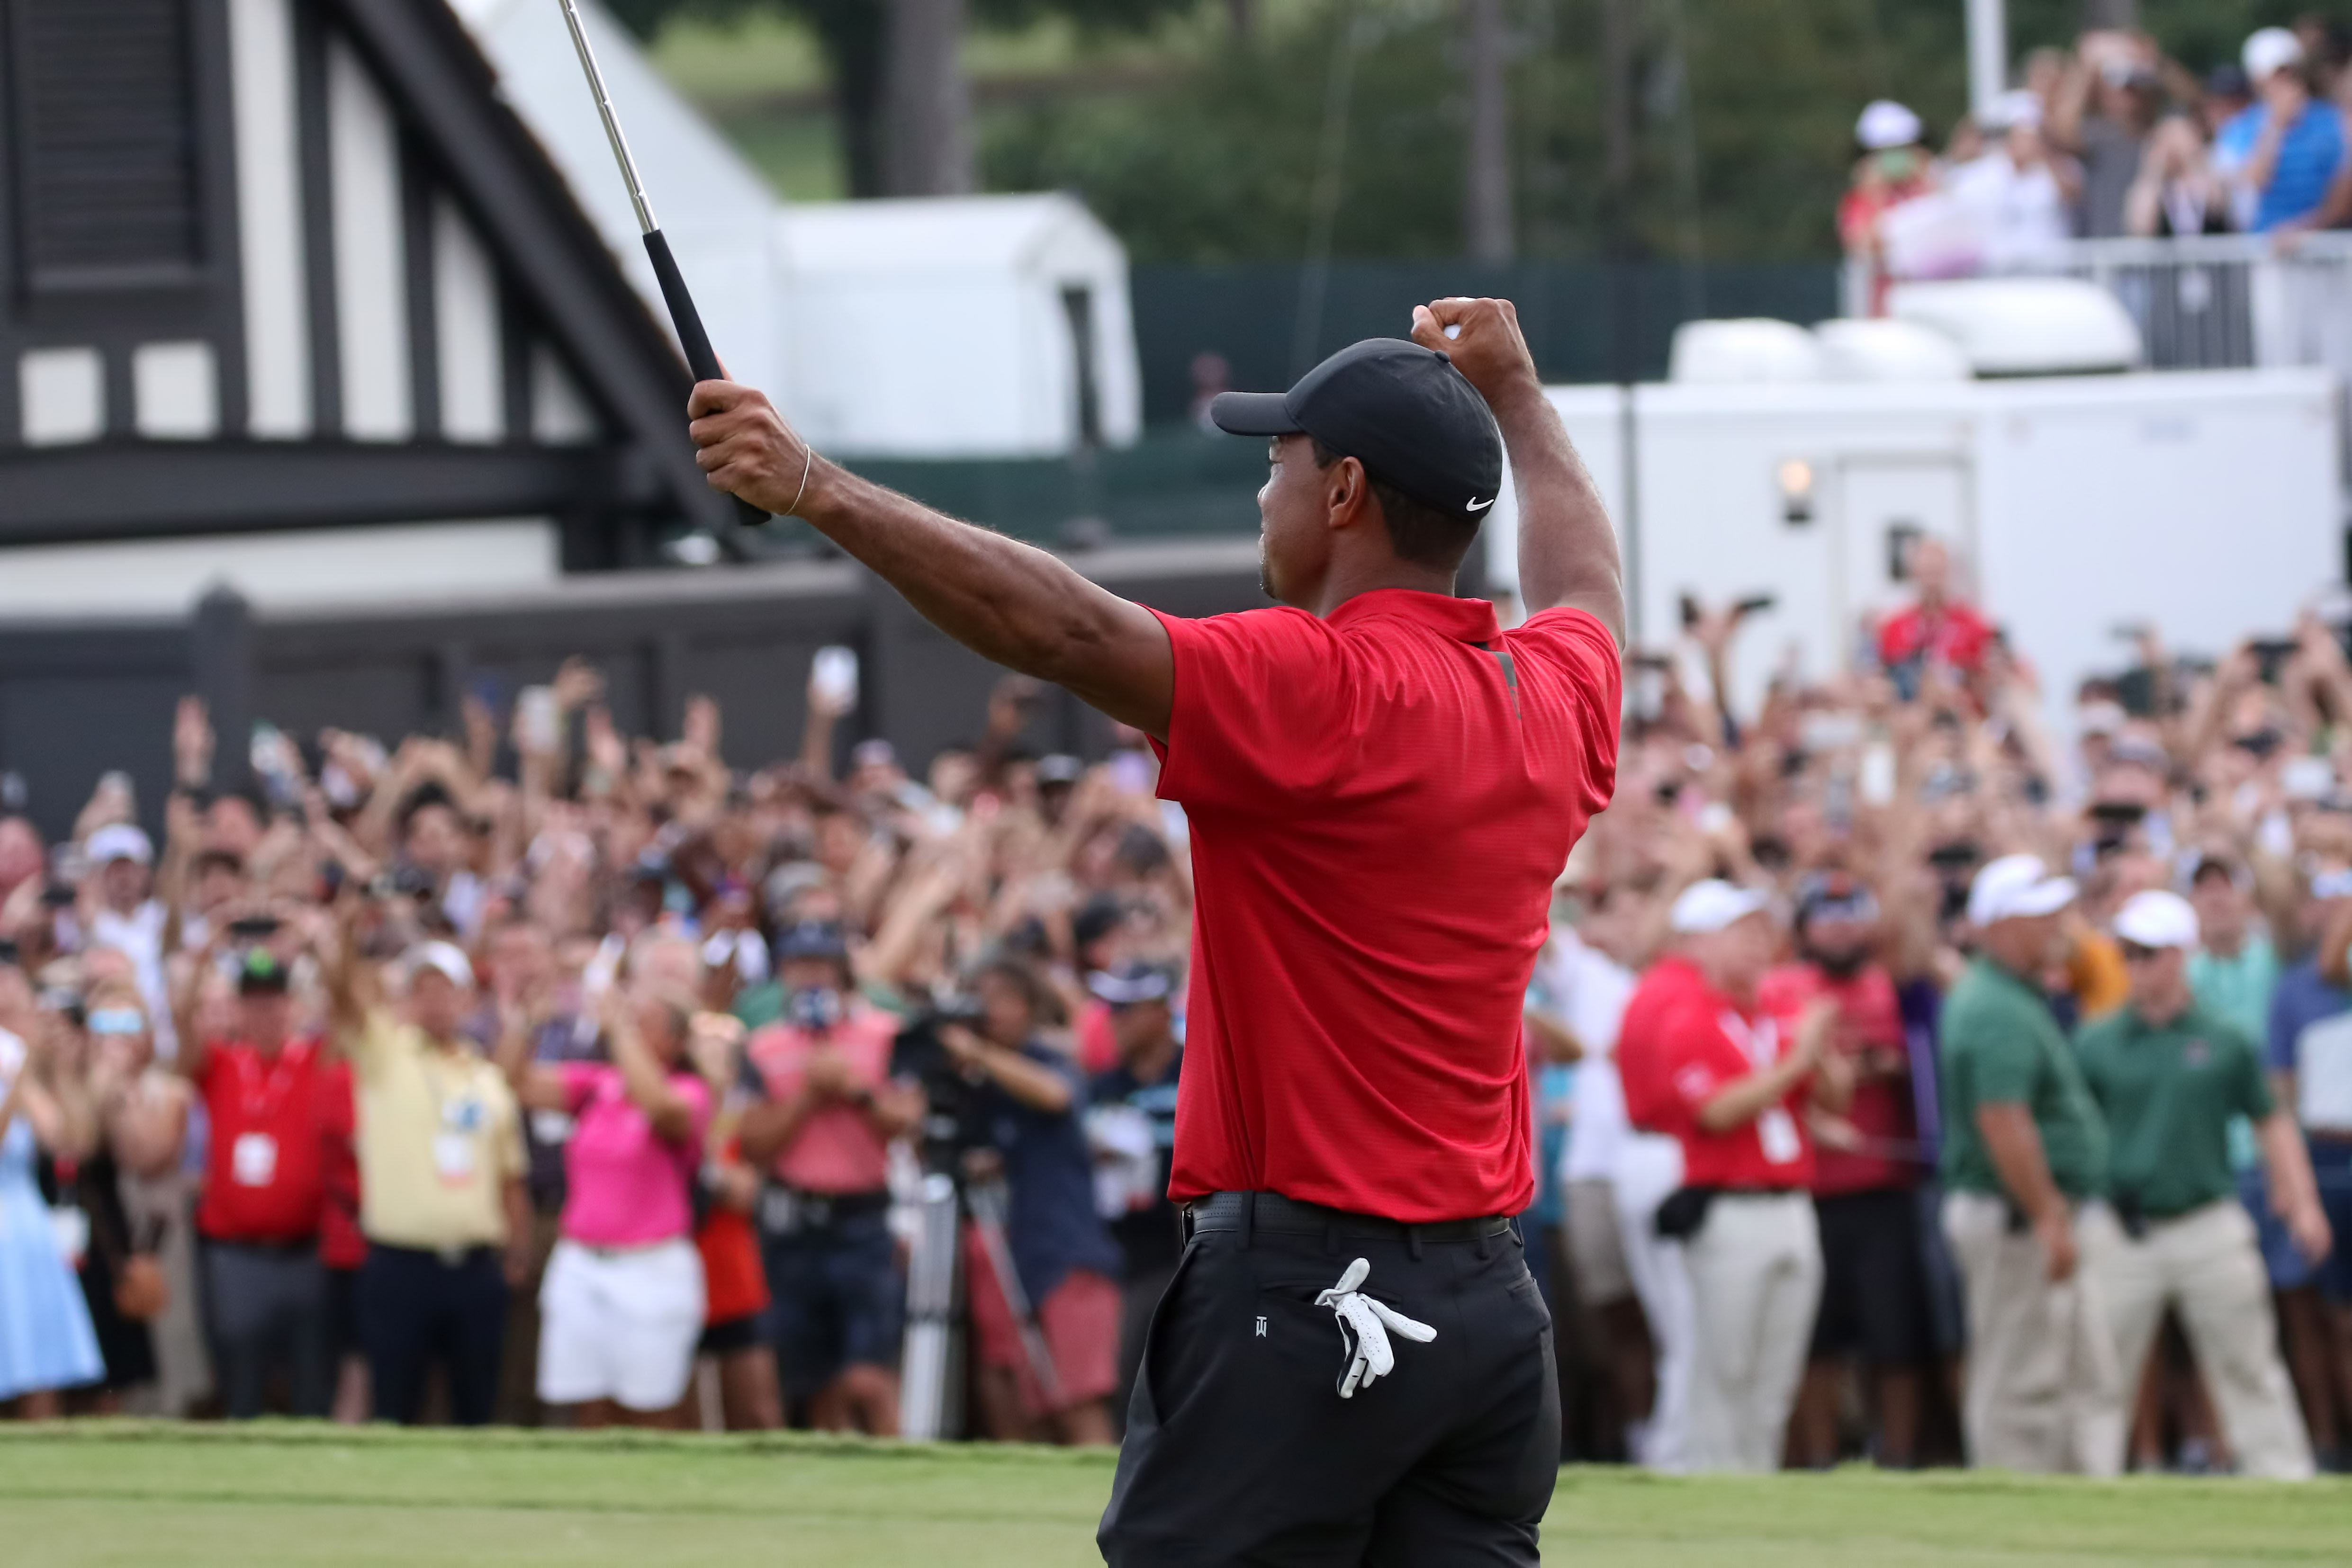 Tiger Woods' Tour Championship win ropes in record streaming figures